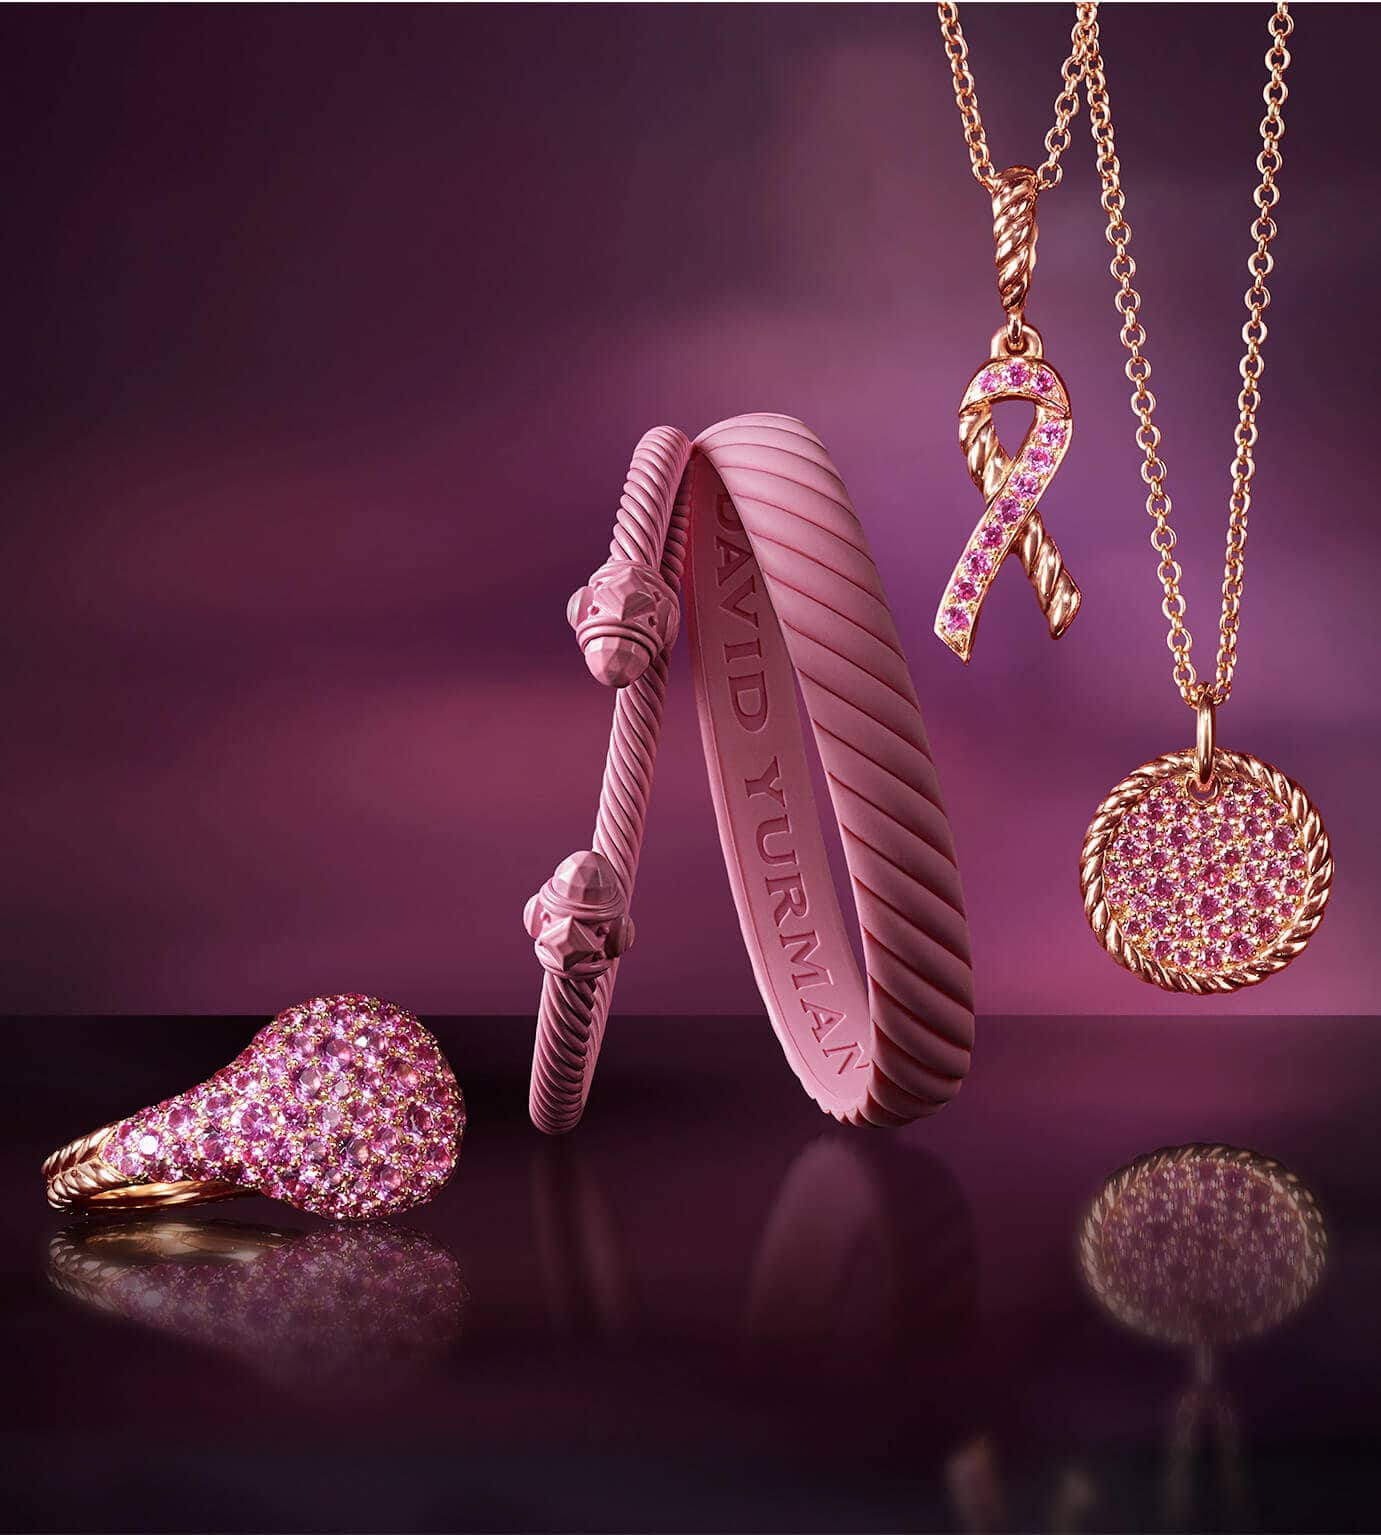 A color photograph shows a David Yurman pinky ring sitting on a black reflective surface to the left of an aluminum Renaissance bracelet, Cable bracelet and two David Yurman necklaces hanging in front of a dark backdrop with pink reflections of light. The women's jewelry is crafted from pink-colored aluminum, rubber or 18K rose gold with pavé pink sapphires. The necklaces are strung with ribbon- and circle-shaped charms.